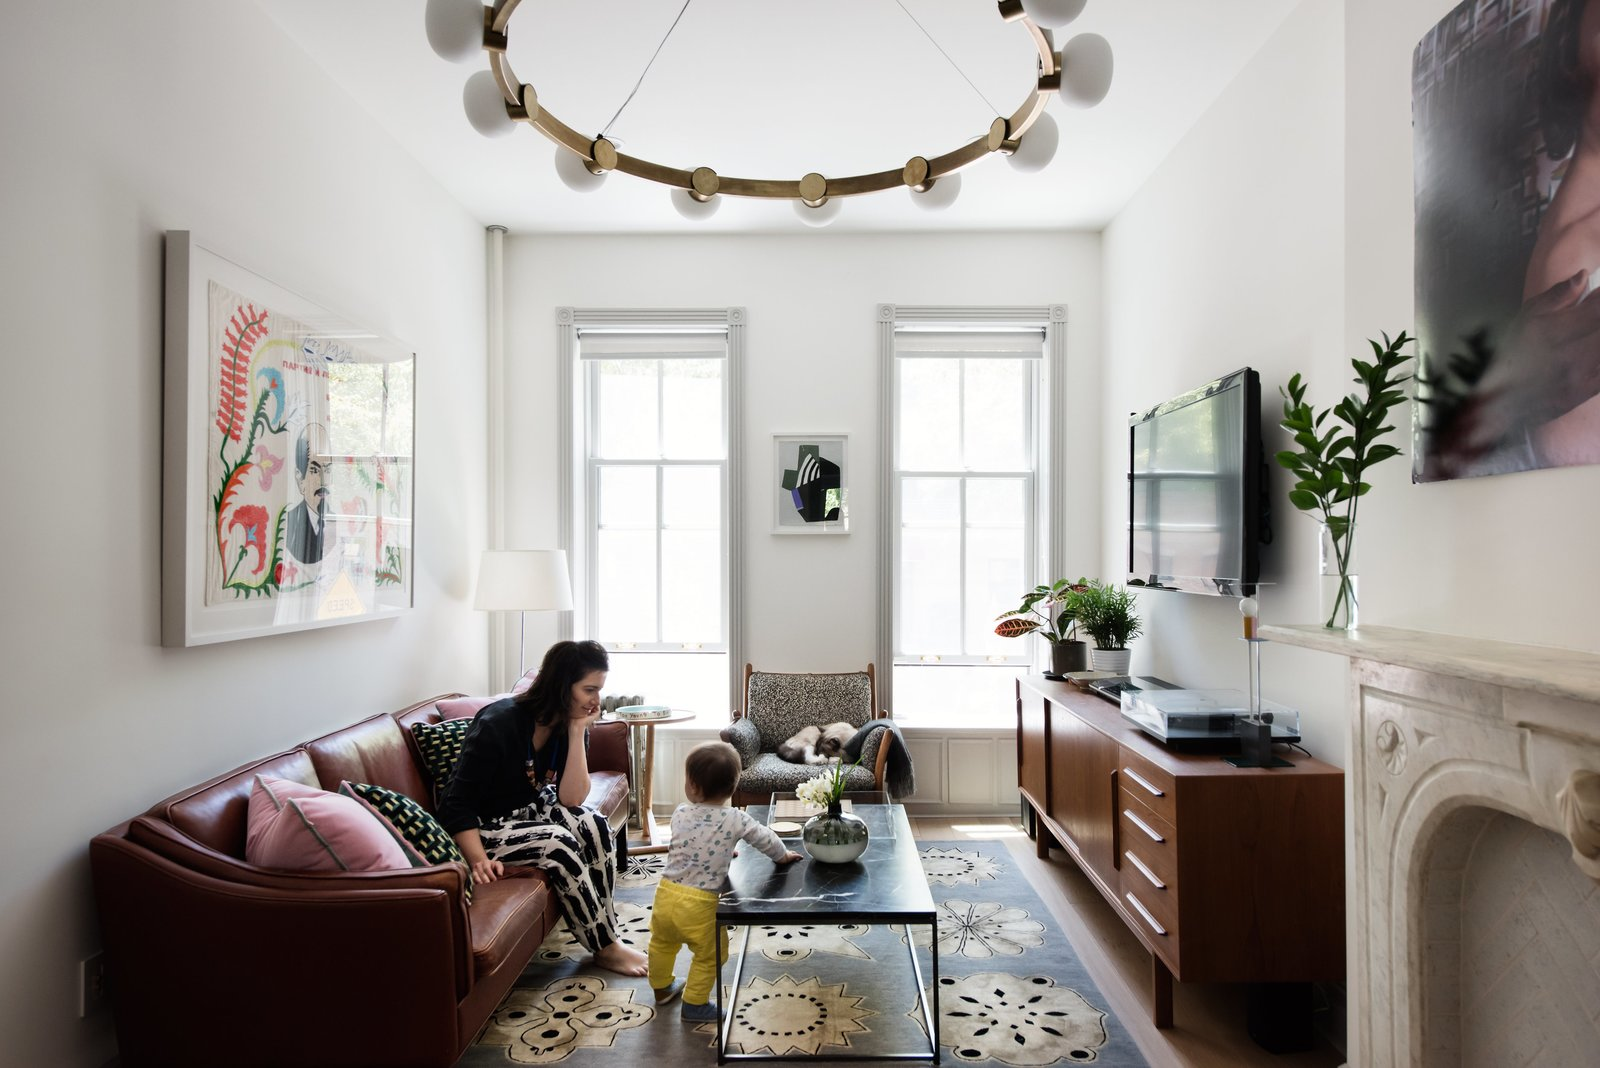 Interior designer Merrill Lyons plays with her son in the Brooklyn home she renovated with her husband, Charles Brill, a lighting designer and cofounder of New York–based company Rich Brilliant Willing (RBW). The couple's design sensibility is marked by a warm mix of historic periods and styles, punctuated with pieces by RBW, including the circular brass Cinema chandelier that hangs in the living room. The leather sofa and teak  credenza are vintage; the 1960s rosewood Genius armchair by Danish designer Illum Wikkelso was reupholstered with fabric sourced from an outlet. Tagged: Living Room, Sofa, Pendant Lighting, Ceiling Lighting, Table Lighting, Console Tables, End Tables, Coffee Tables, Lamps, Rug Floor, and Light Hardwood Floor.  Photo 5 of 9 in 6 Main Tips to Consider When Designing Your Home For a Growing Family from Modern Becomes Eclectic in This Renovated Brooklyn Townhouse